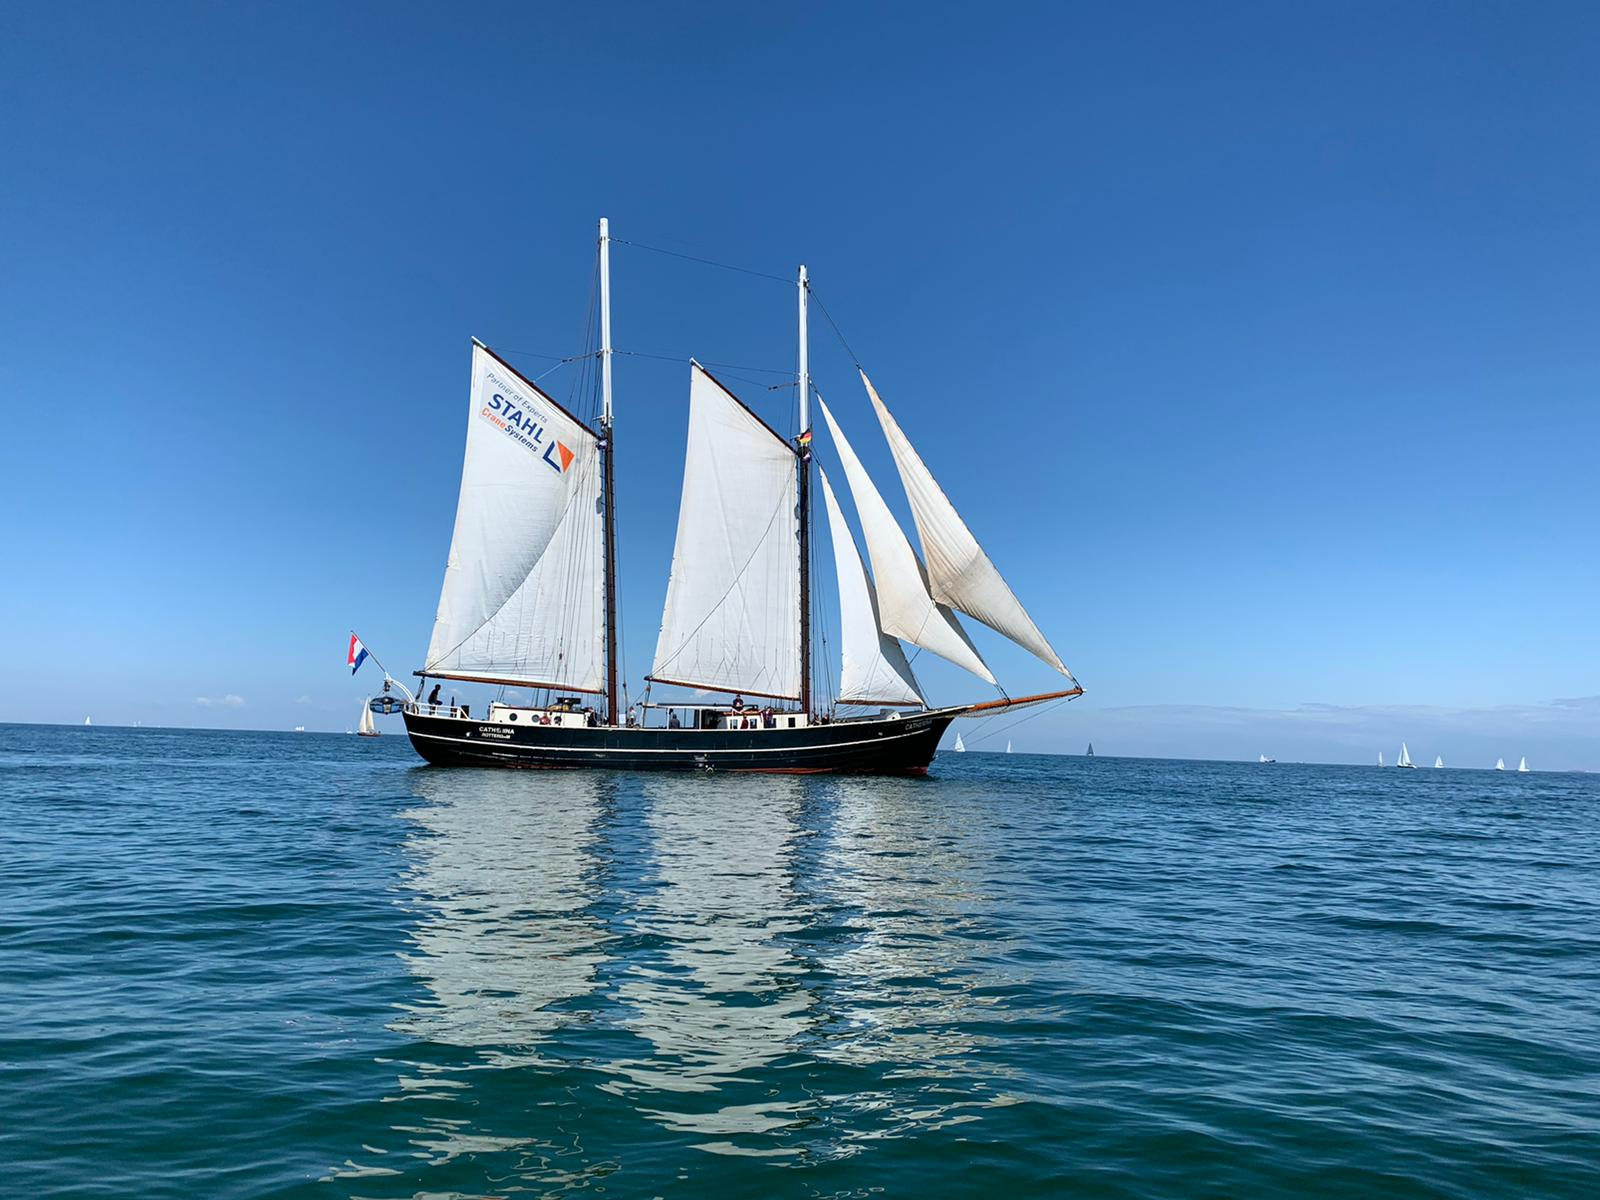 Sailingship Catherina